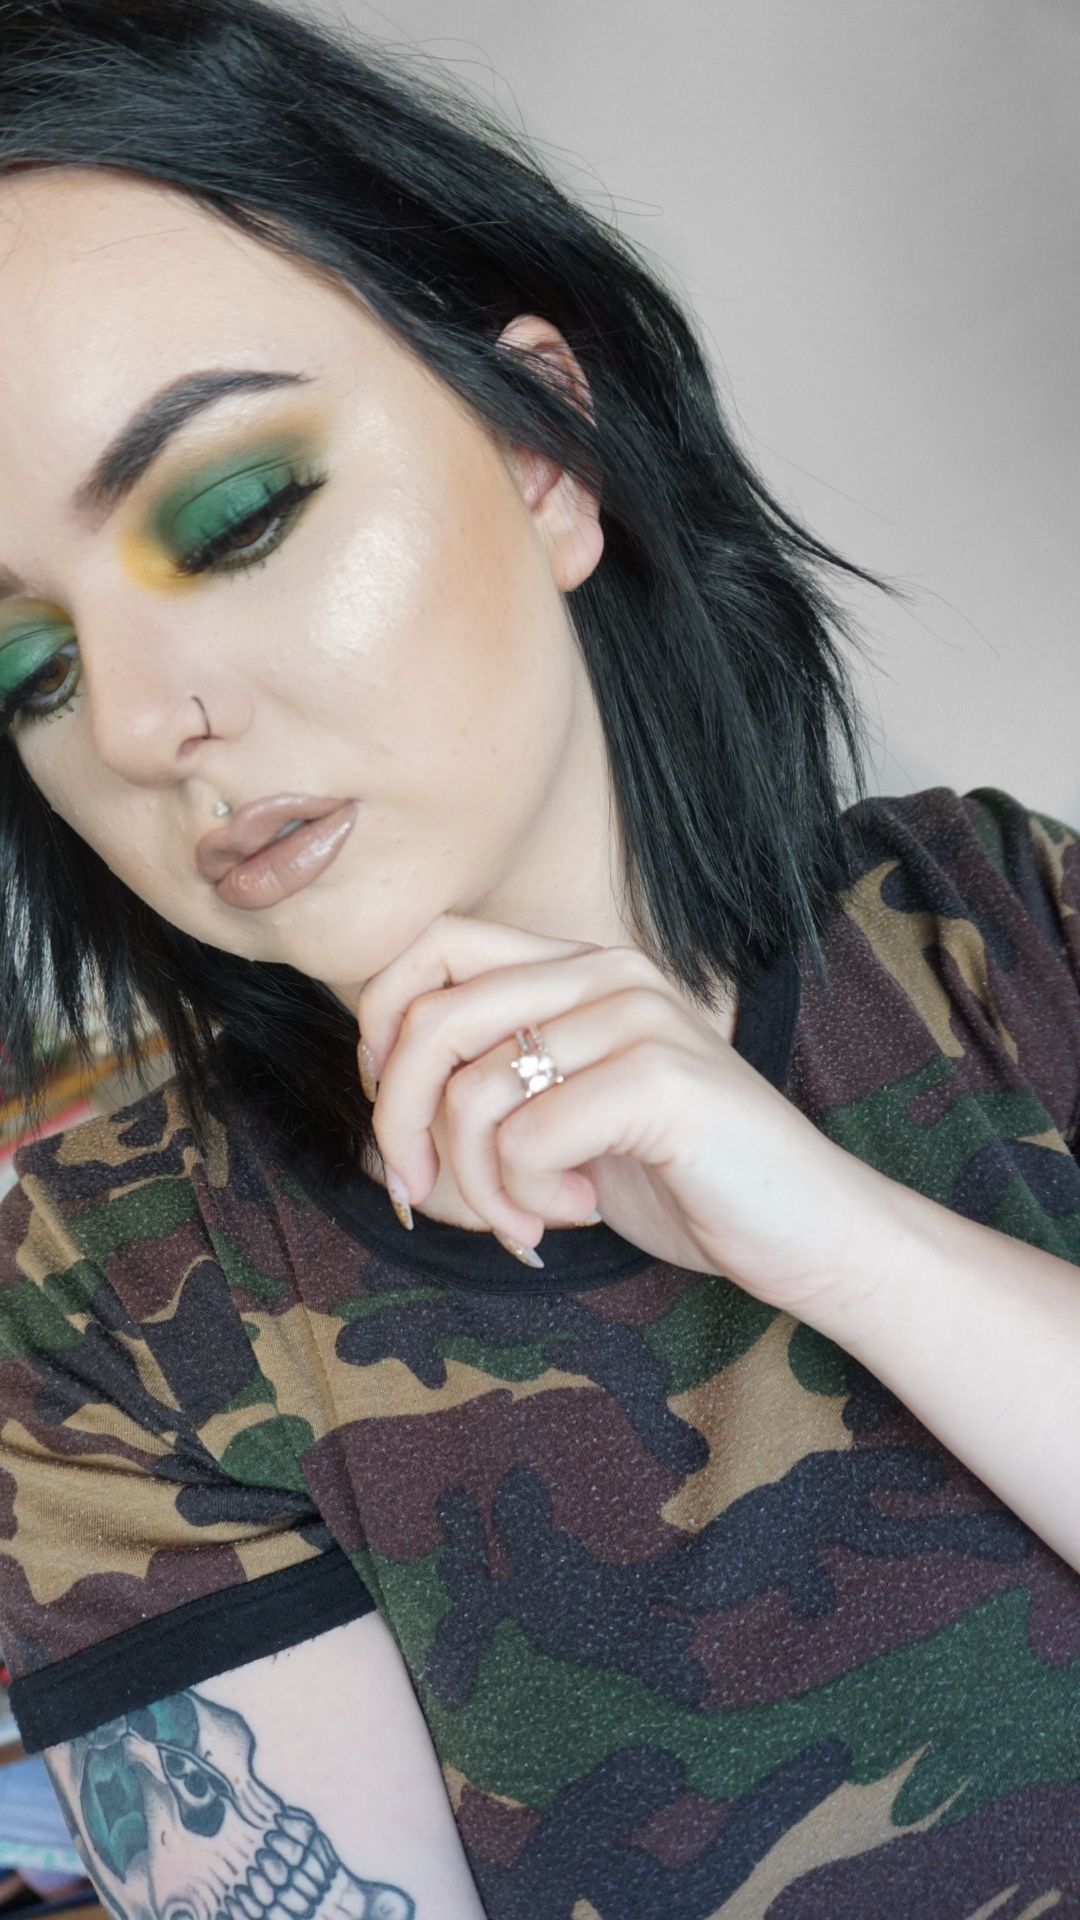 JH X Morphe Armed & palette makeup look with the